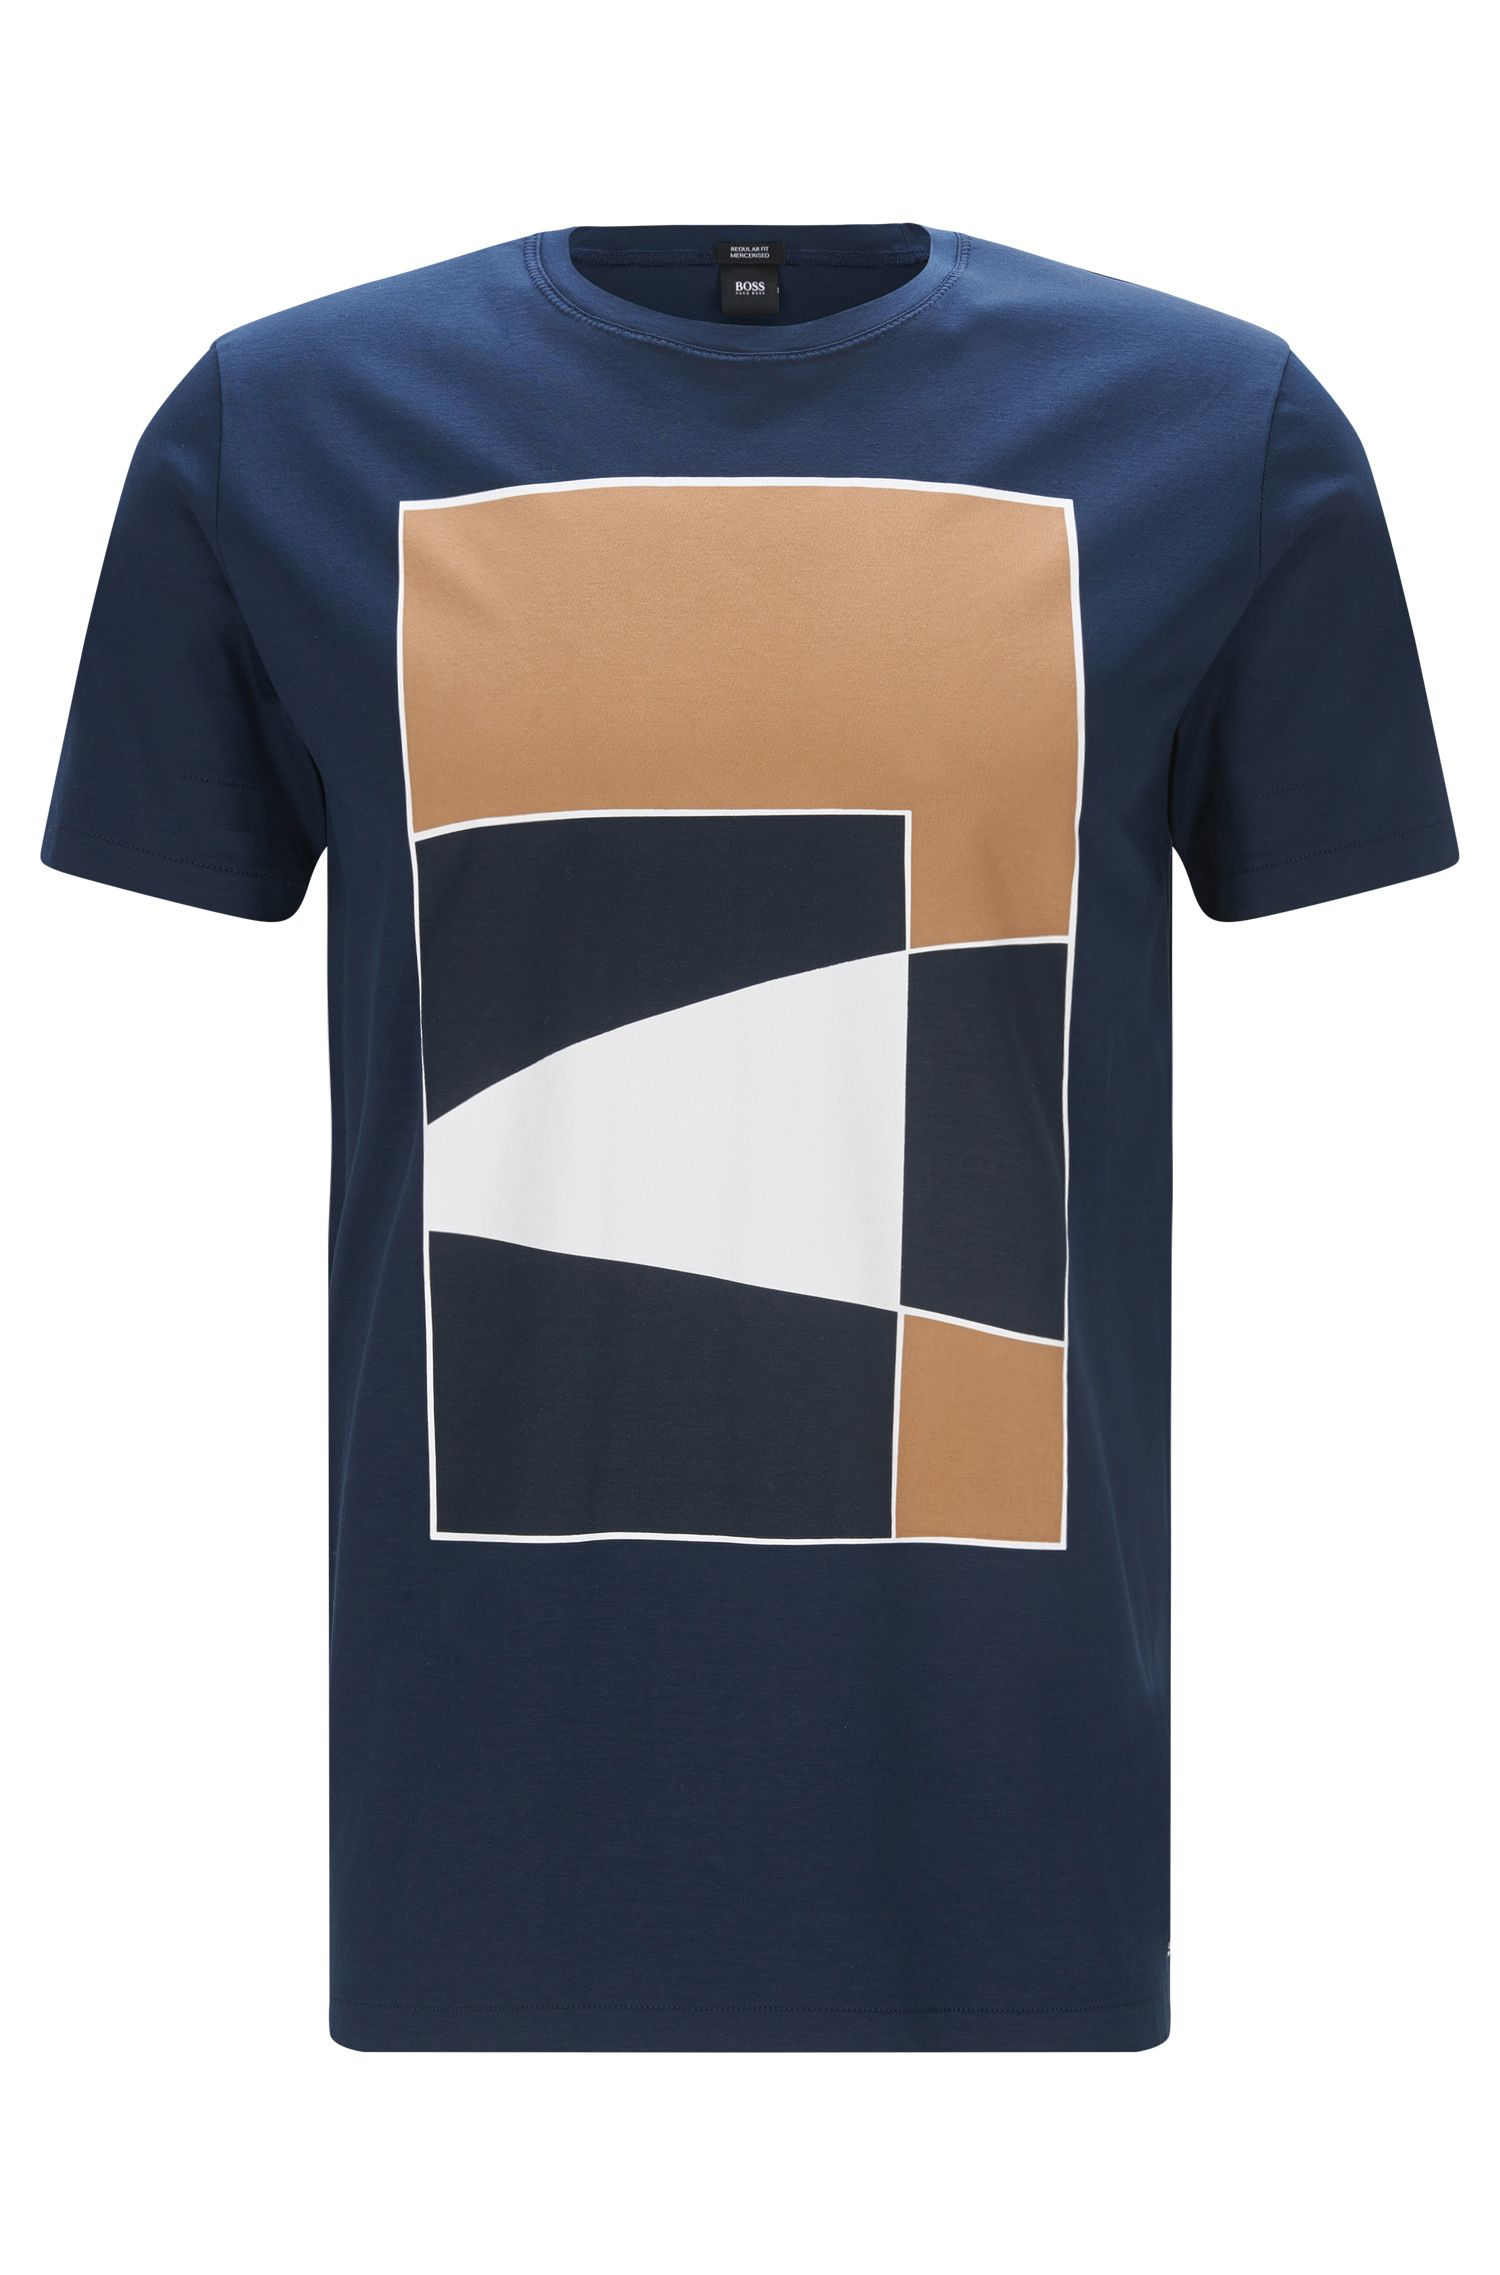 Camiseta de algodón mercerizado regular fit con estampado geométrico